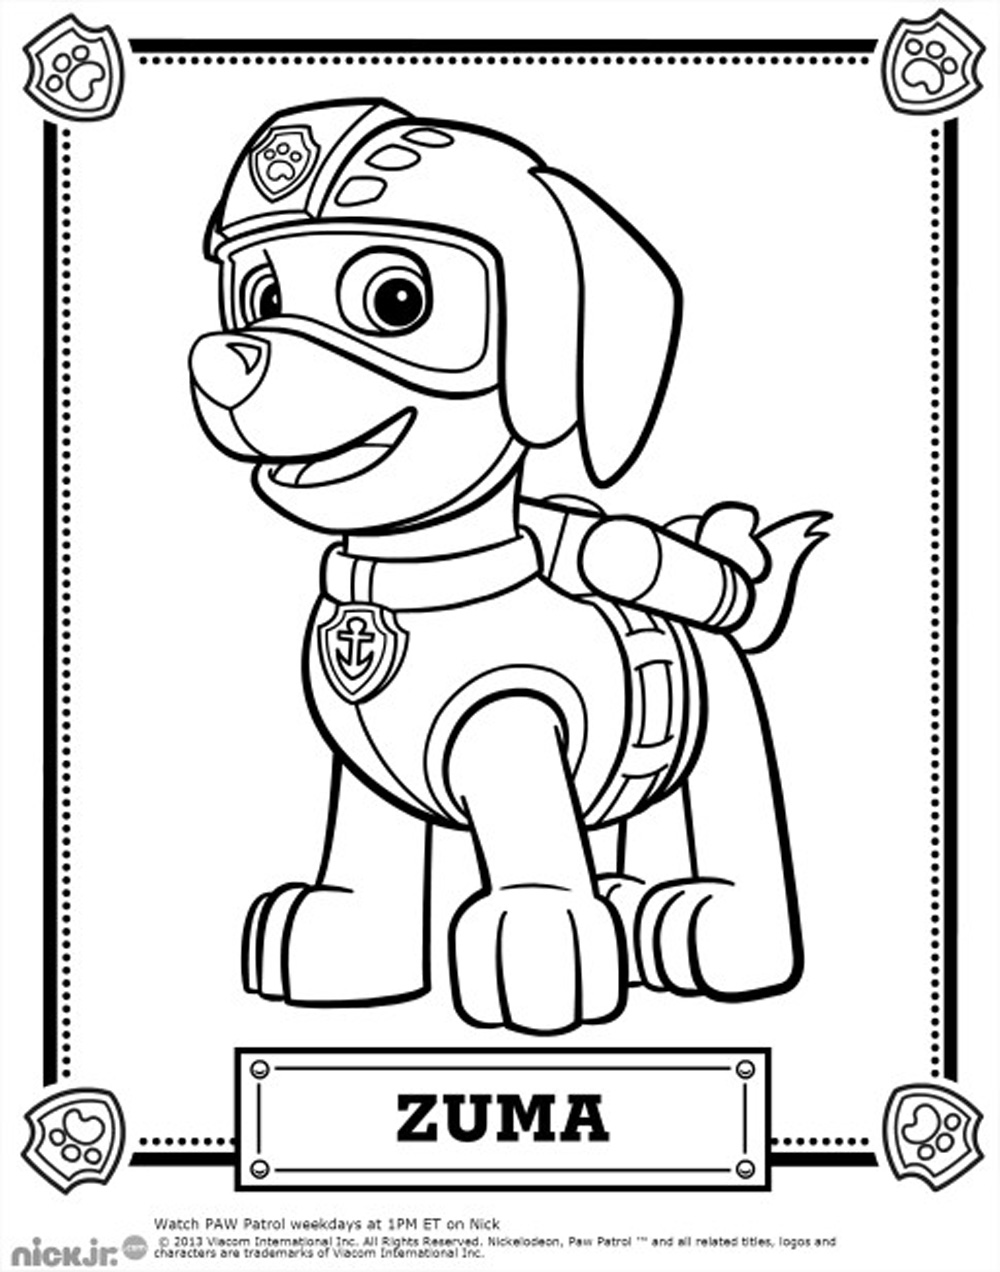 paw patrol coloring characters paw patrol colouring page get coloring pages patrol coloring paw characters